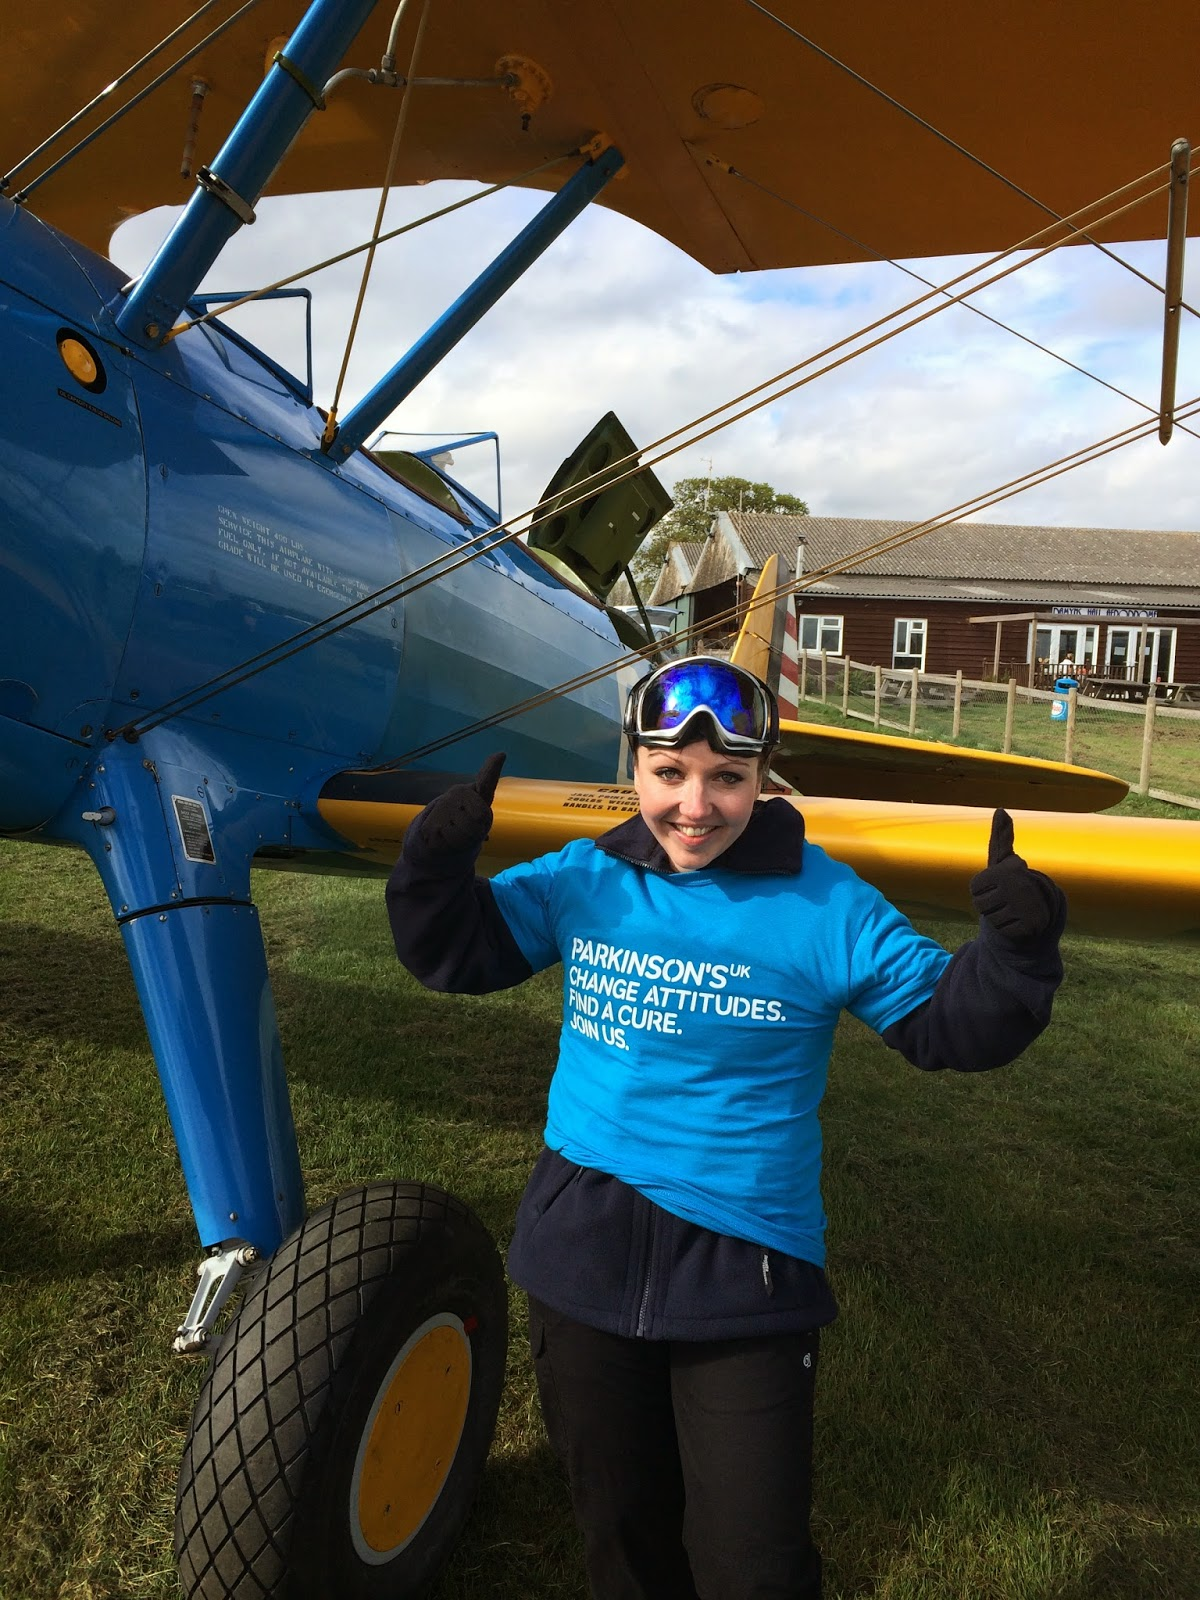 www.charitywingwalk.co.uk